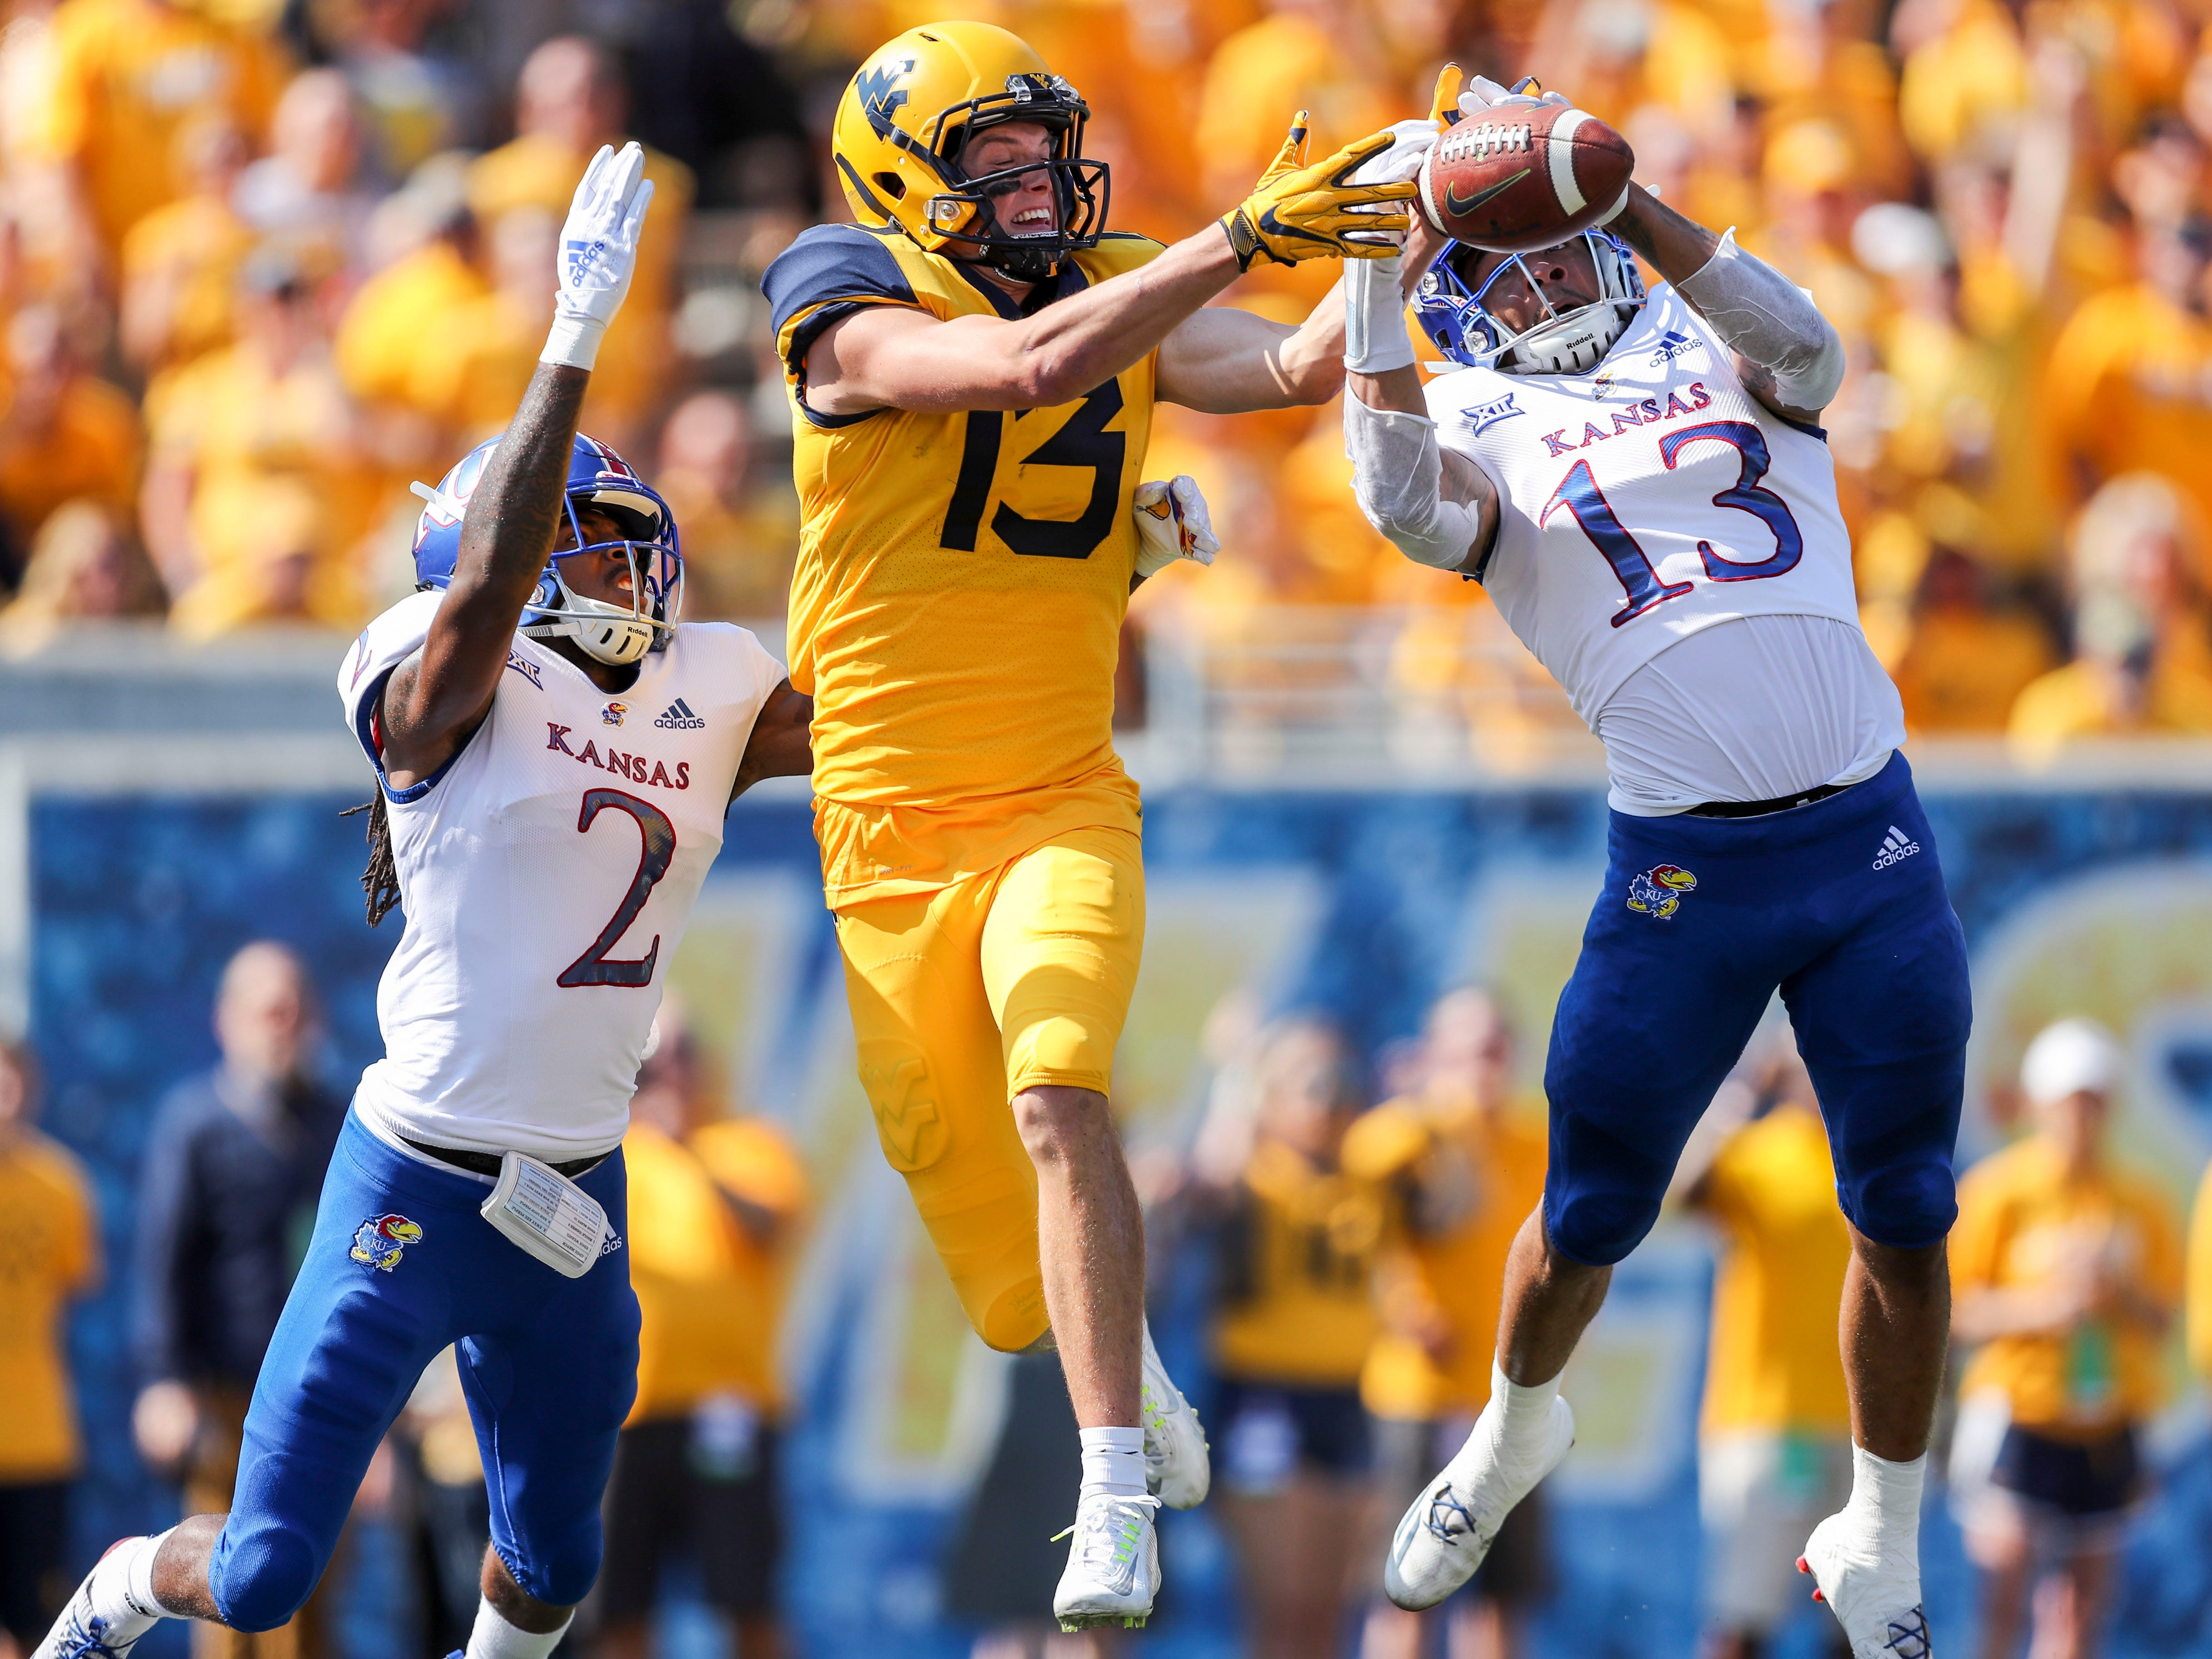 Kansas Jayhawks cornerback Hasan Defense breaks up a pass intended for West Virginia Mountaineers wide receiver David Sills V during the first quarter at Mountaineer Field at Milan Puskar Stadium.